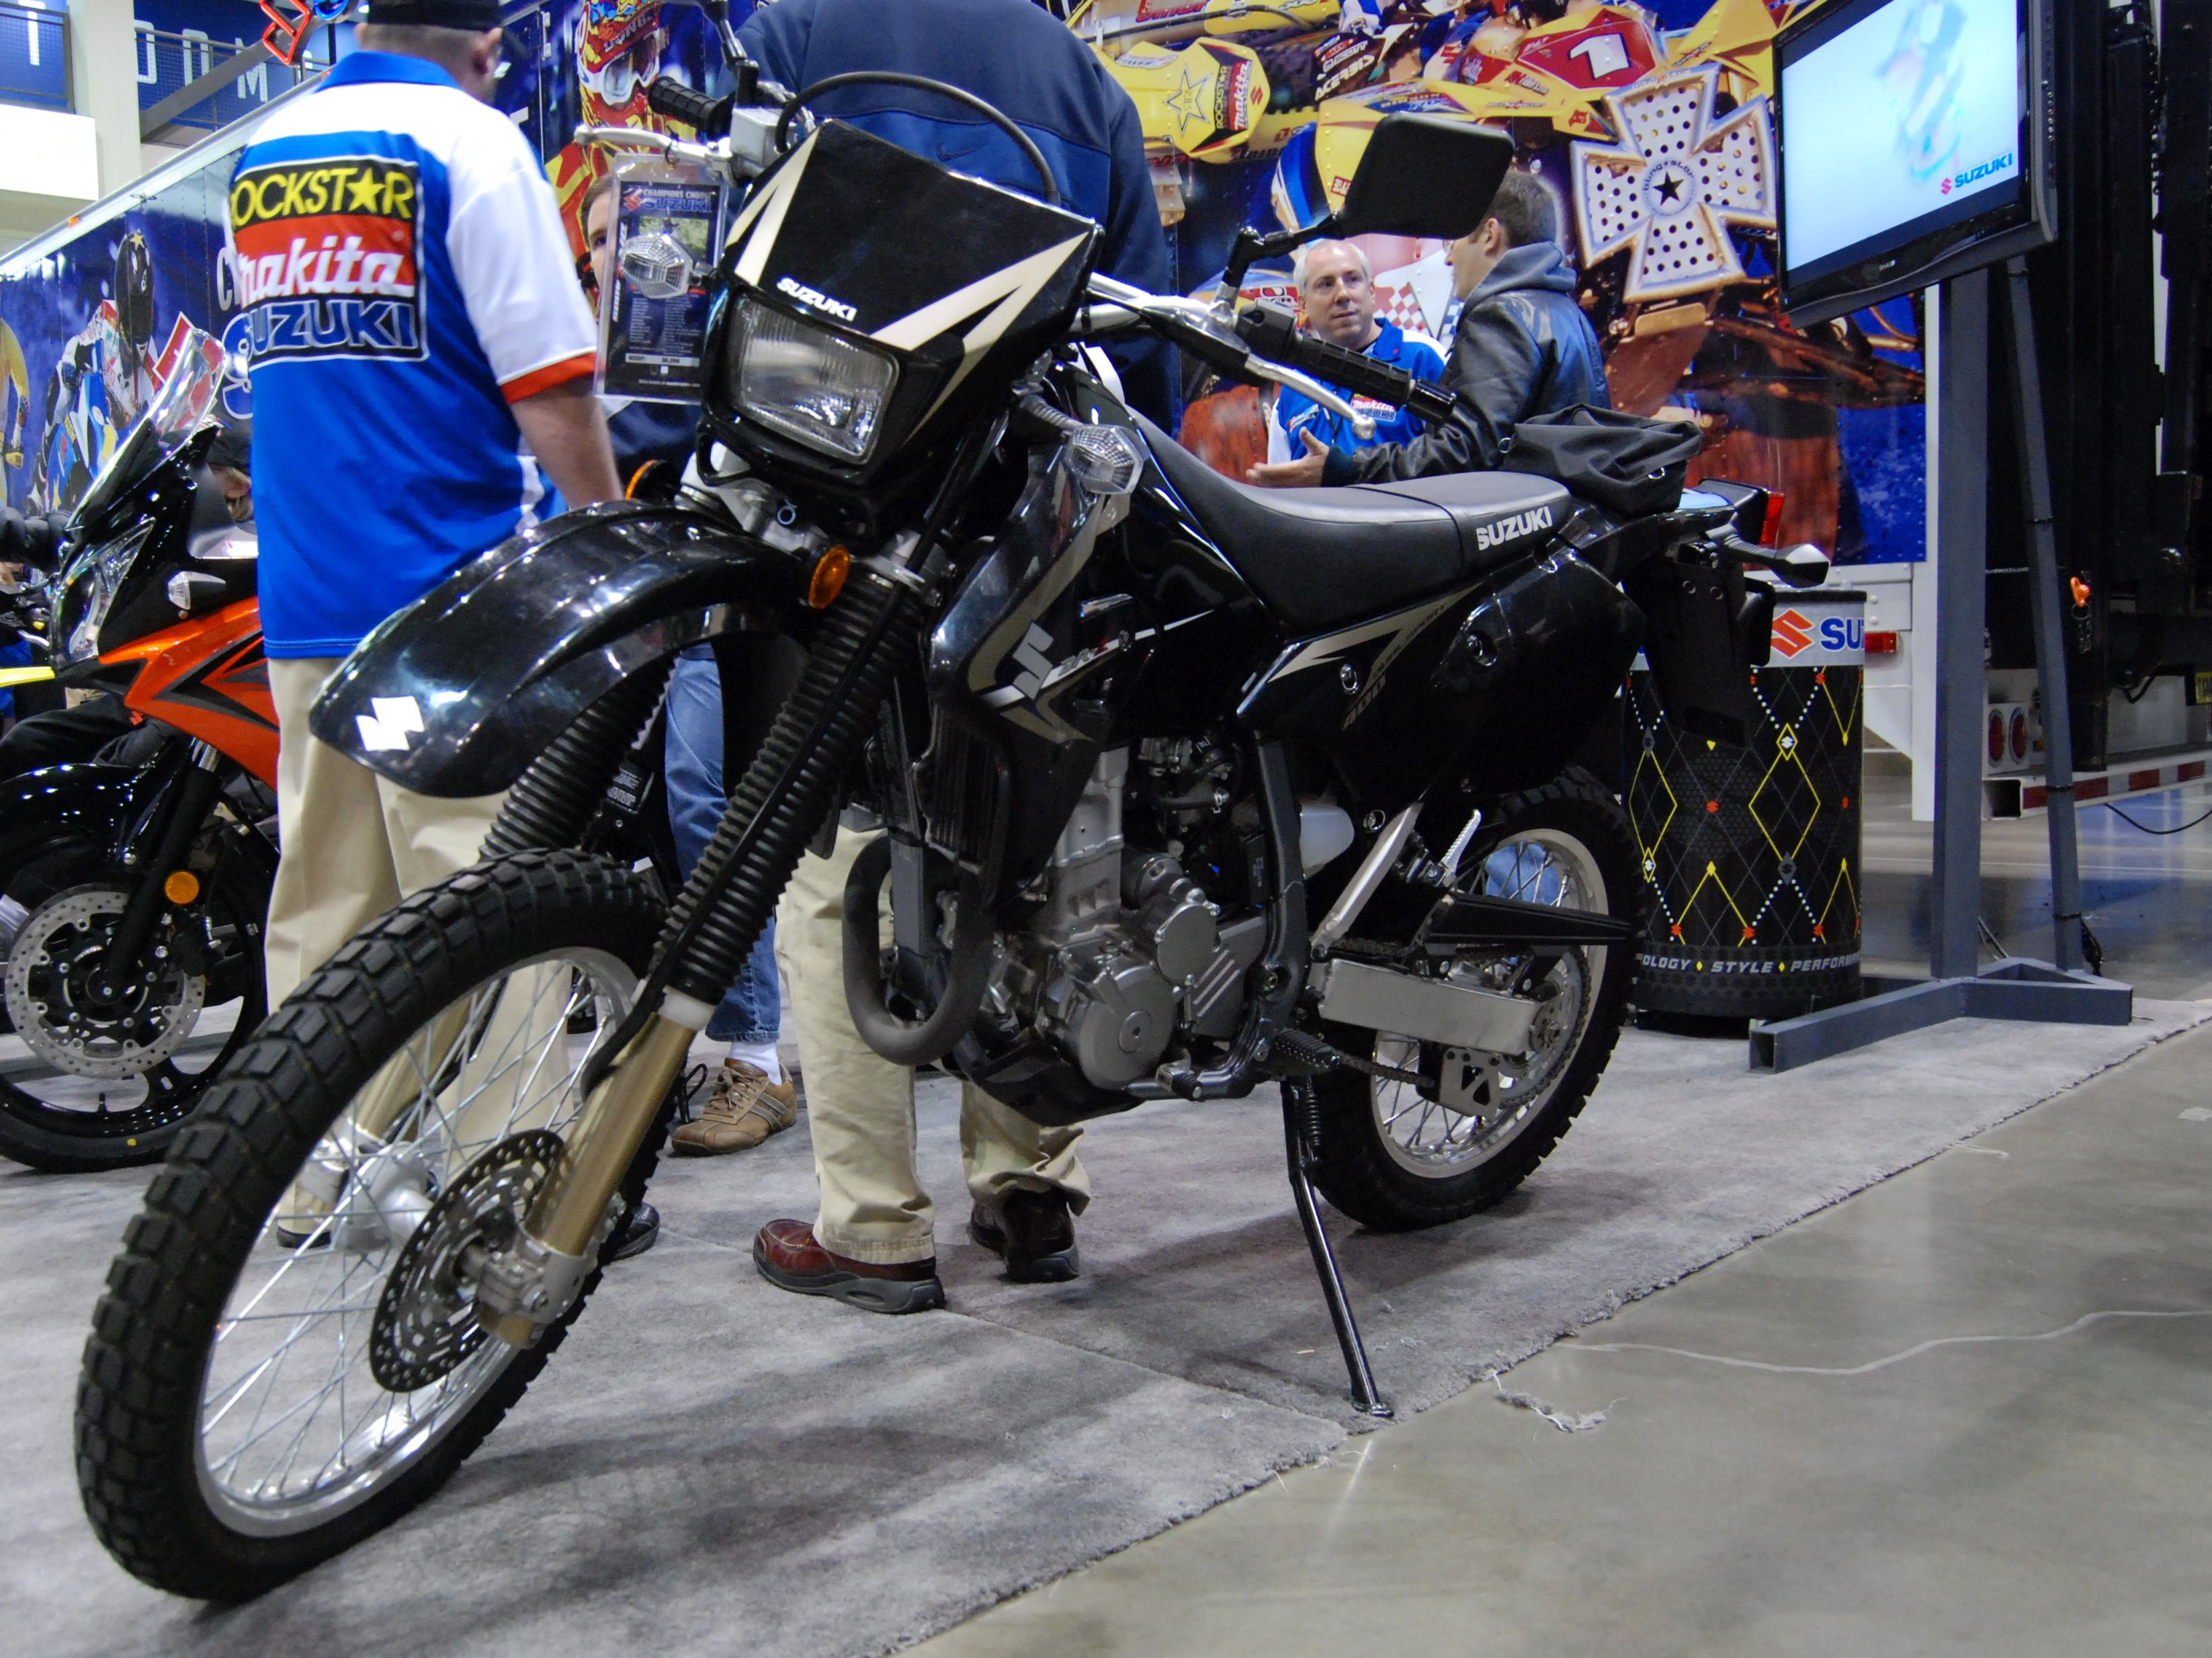 Magnificent Suzuki Dr Z400 Wikipedia Pabps2019 Chair Design Images Pabps2019Com